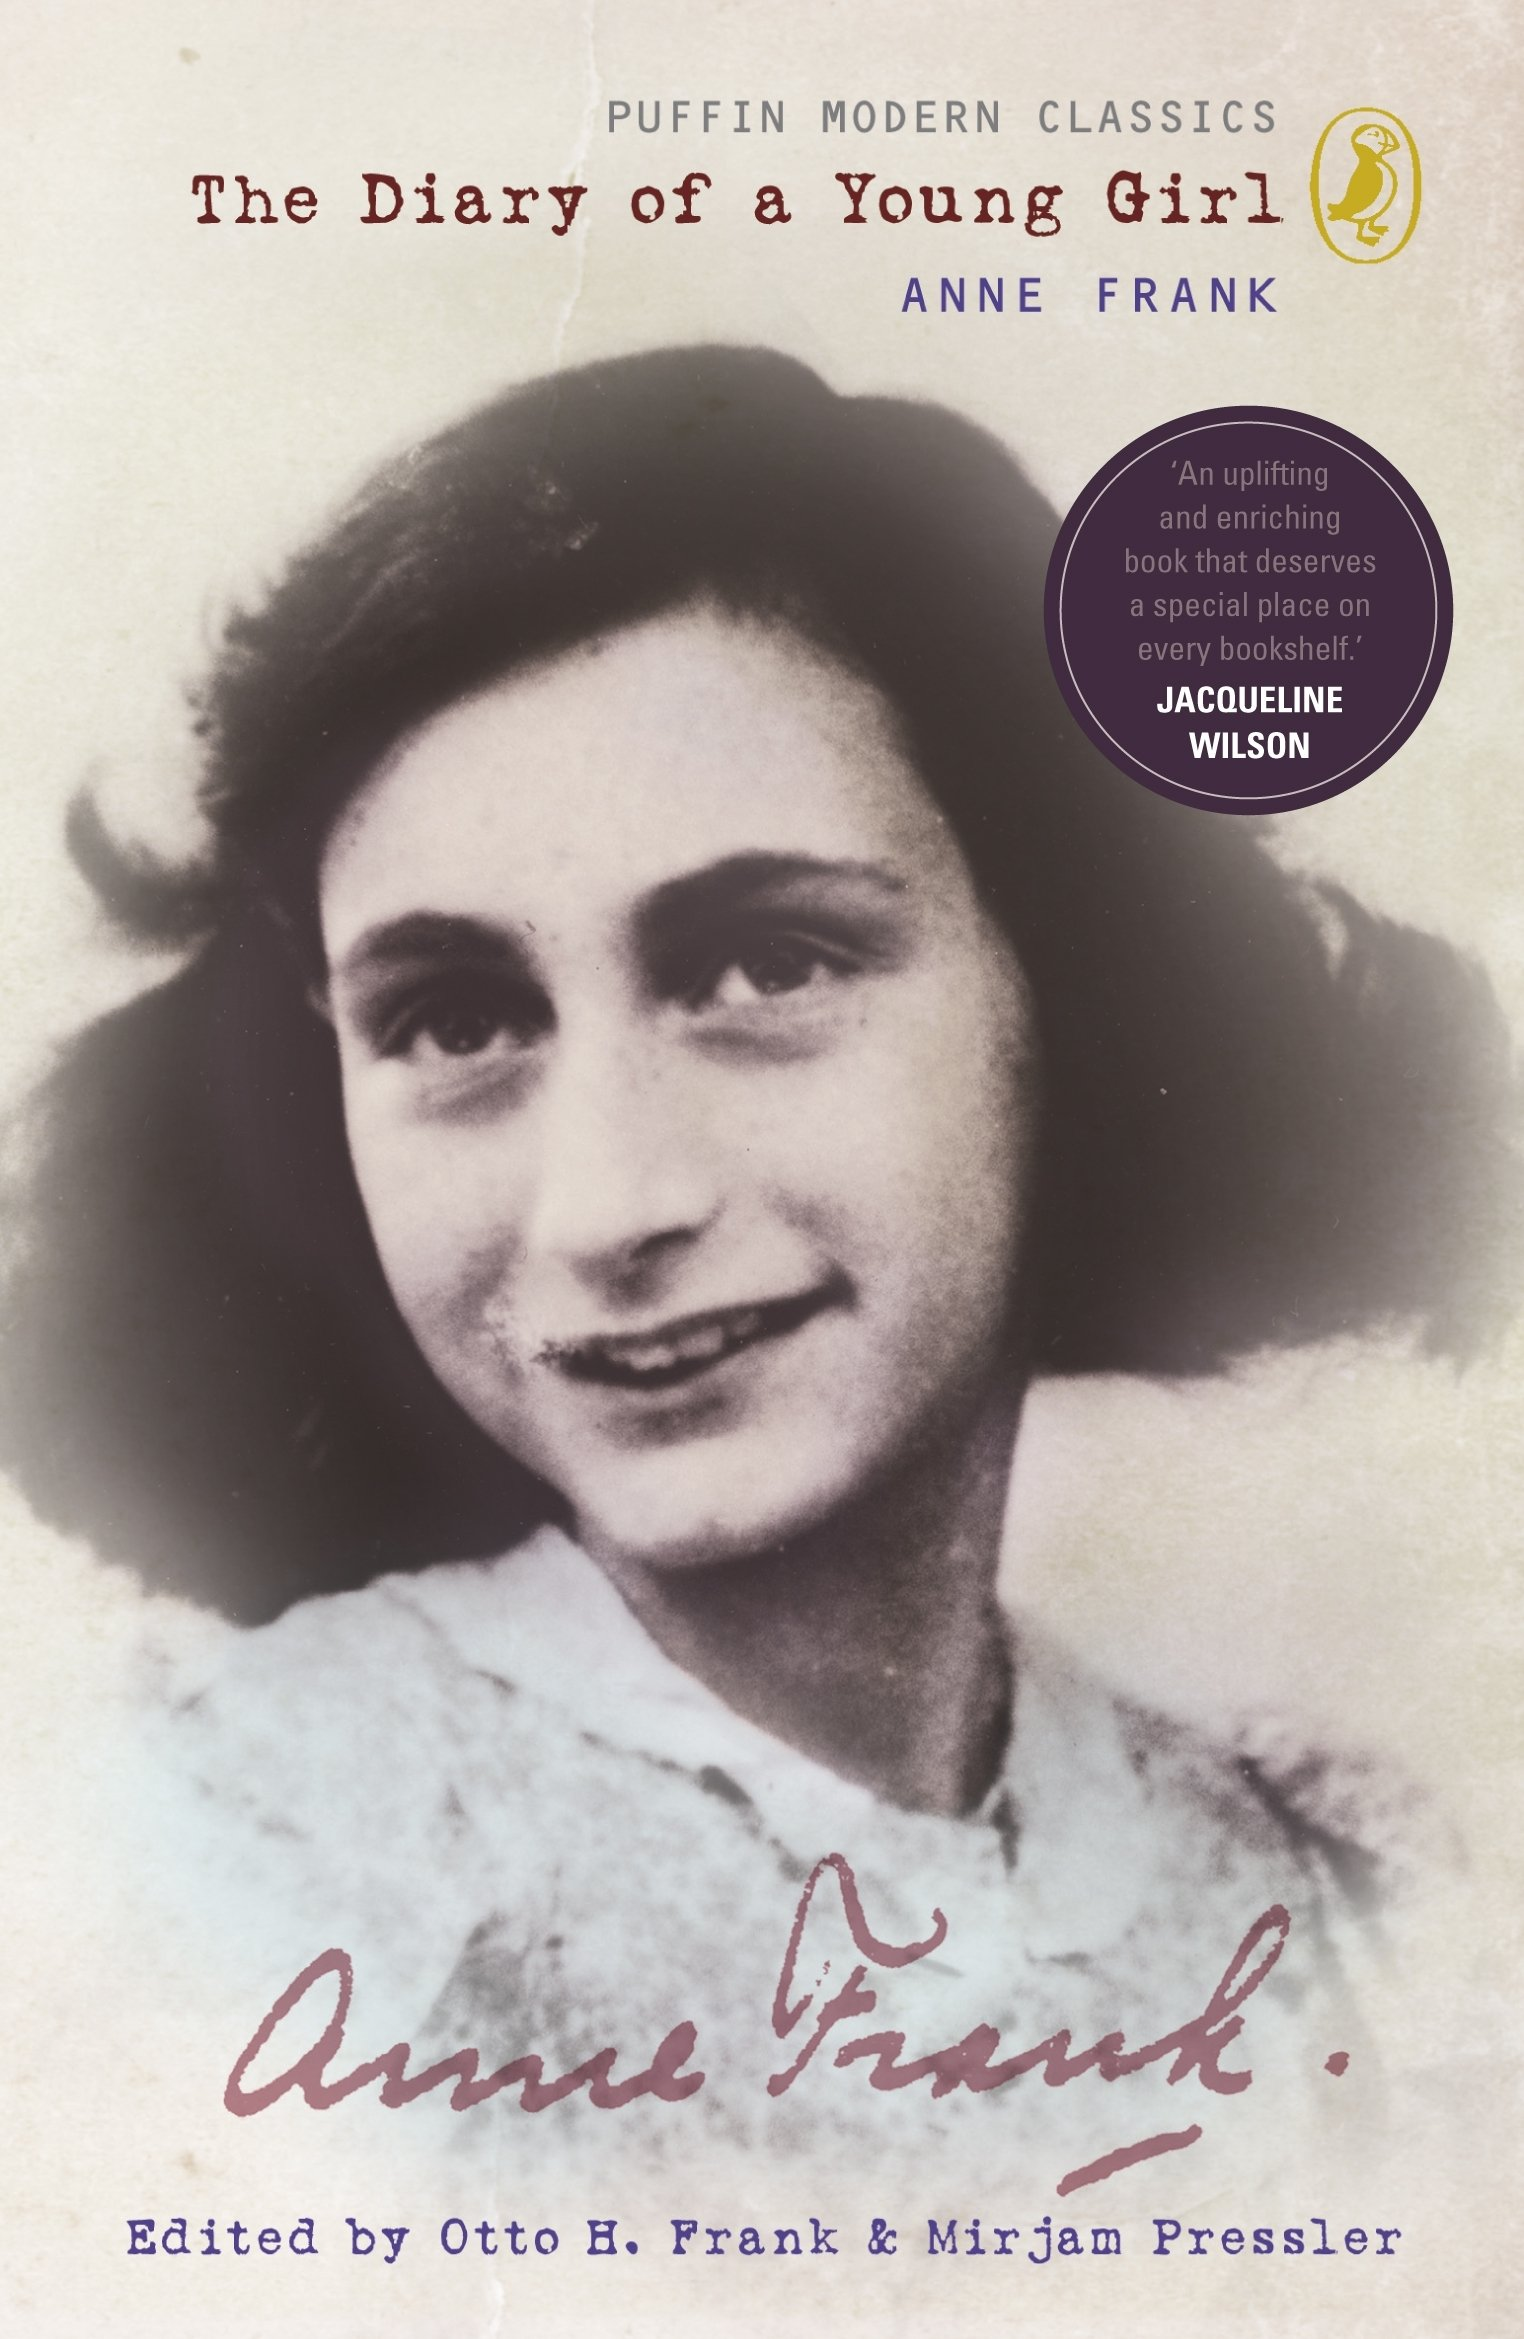 The Diary of a Young Girl: The Definitive Edition (Puffin Modern Classics) por Anne Frank